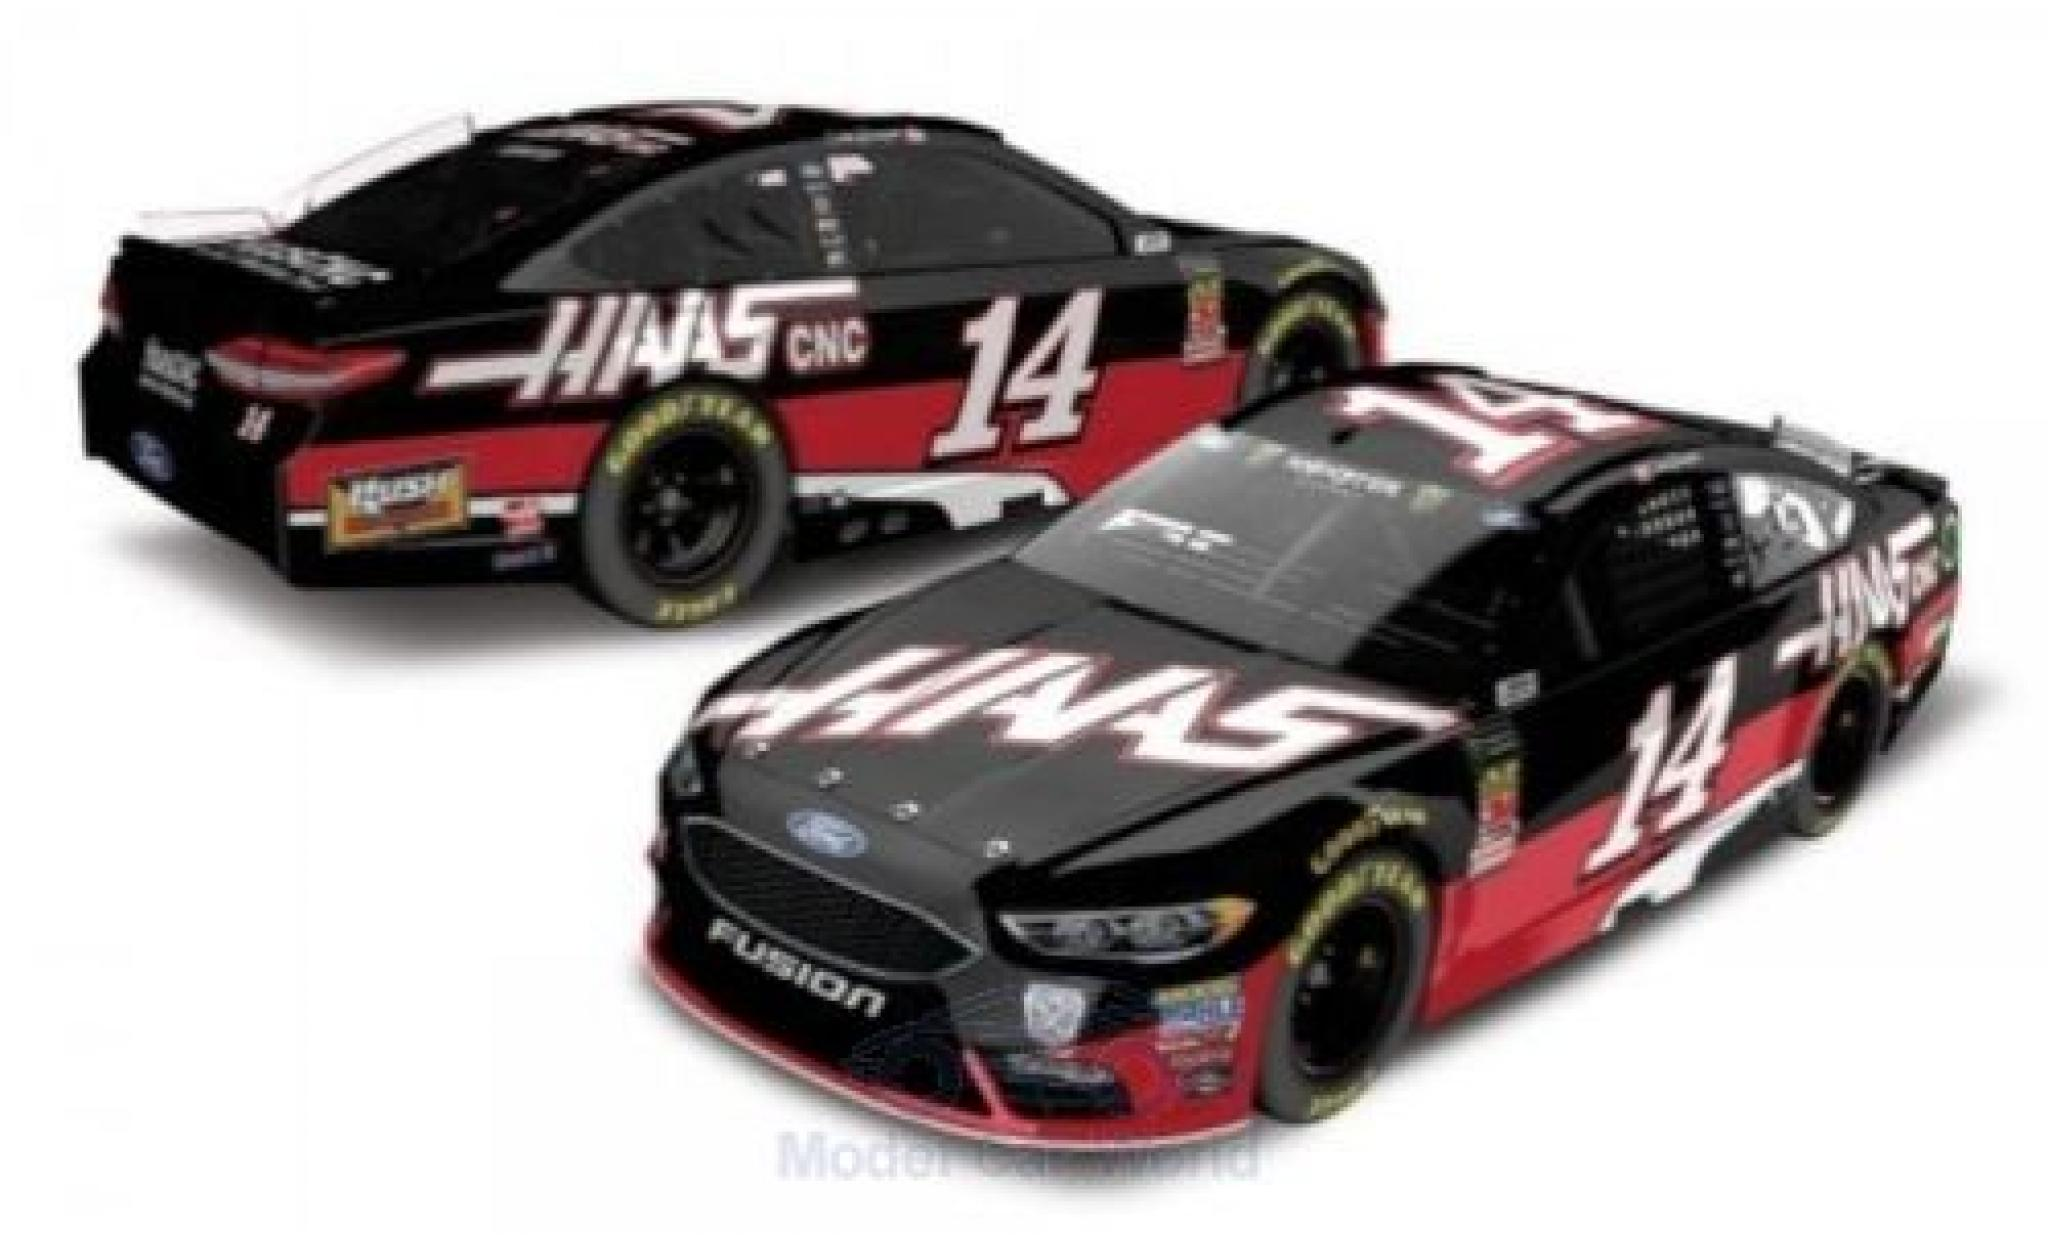 Ford Fusion 1/64 Lionel Racing No.14 Stewart-Haas Racing Haas CNC Nascar 2018 C.Bowyer